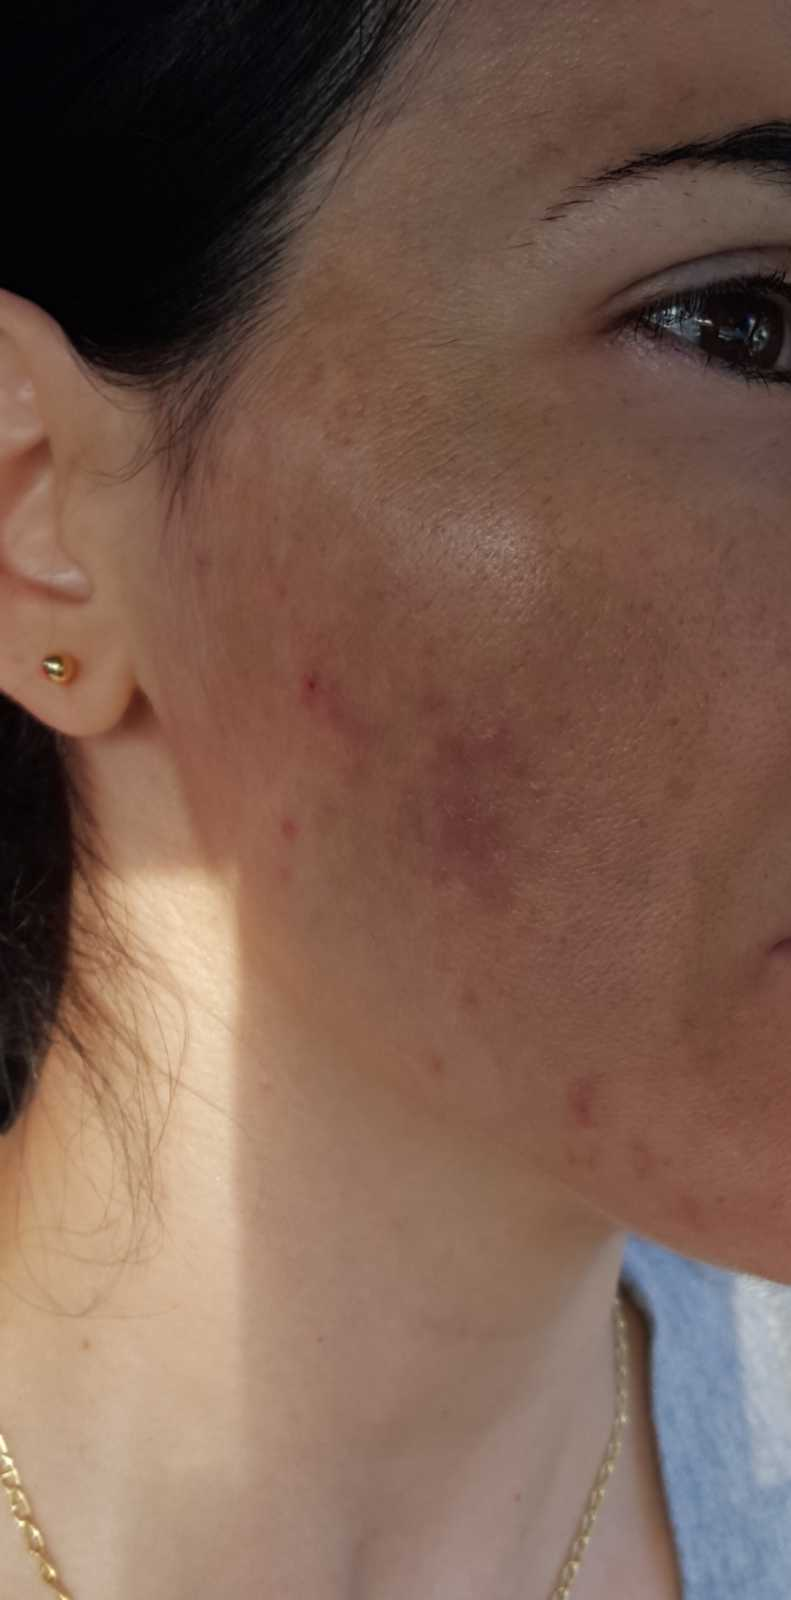 cystic acne on woman's face